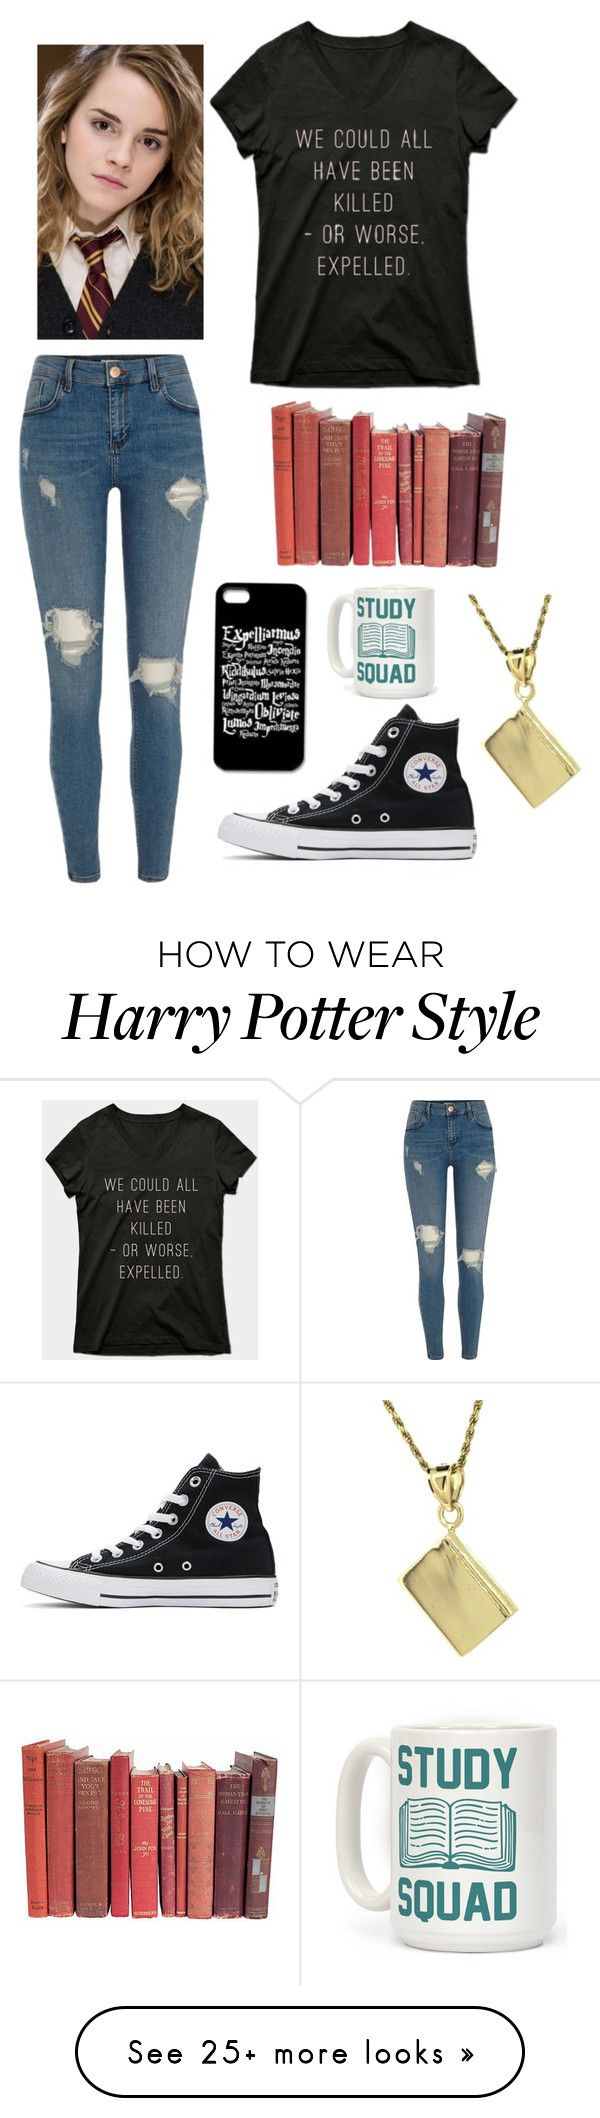 """""""Hermione Granger"""" by maia-hd on Polyvore featuring Emma Watson, River Island, Converse and Human"""